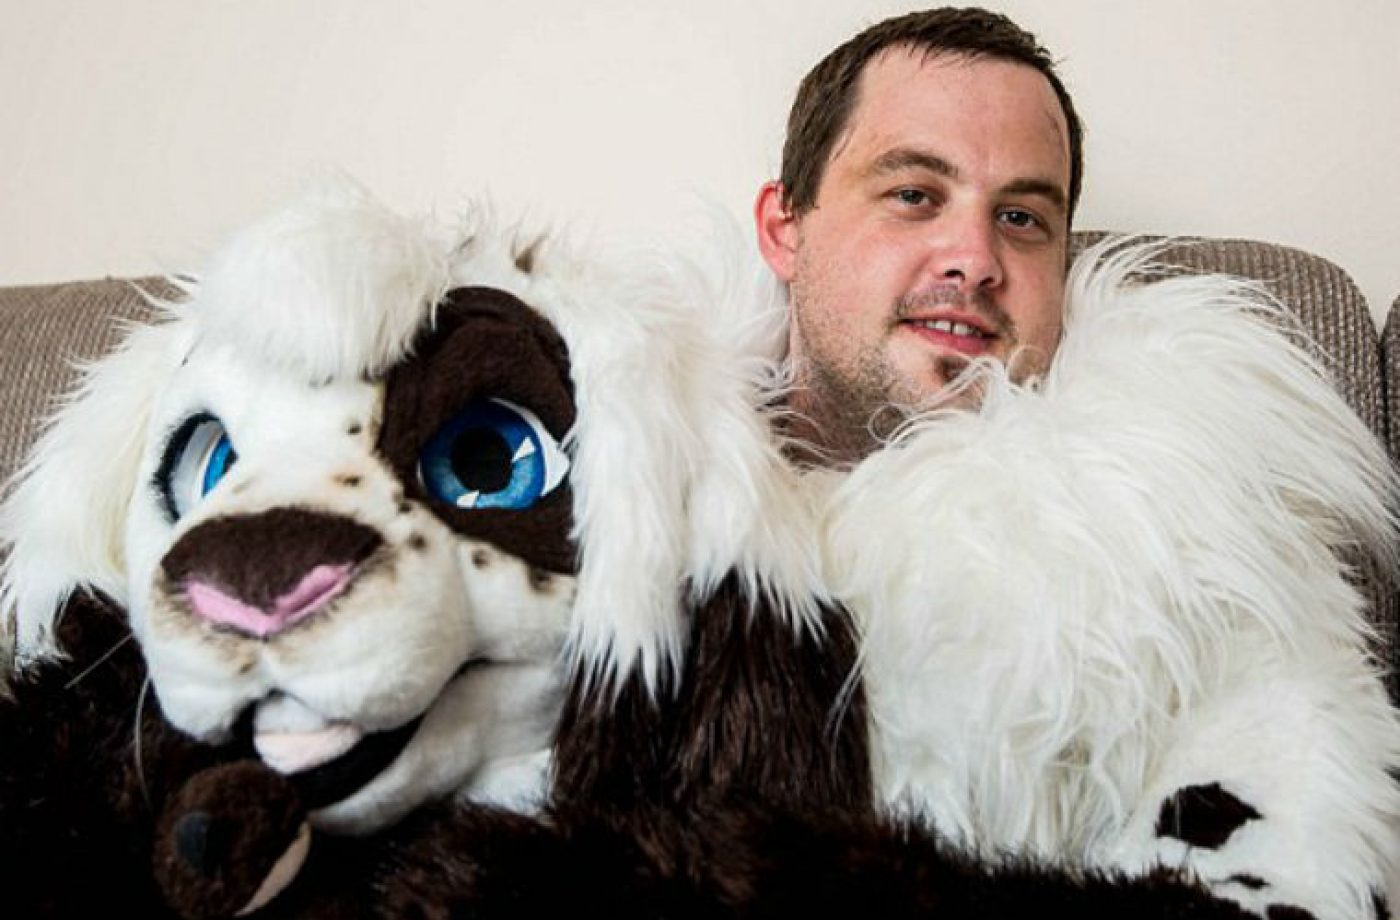 Mechanic explains why he spends his days off dressed as a giant bunny